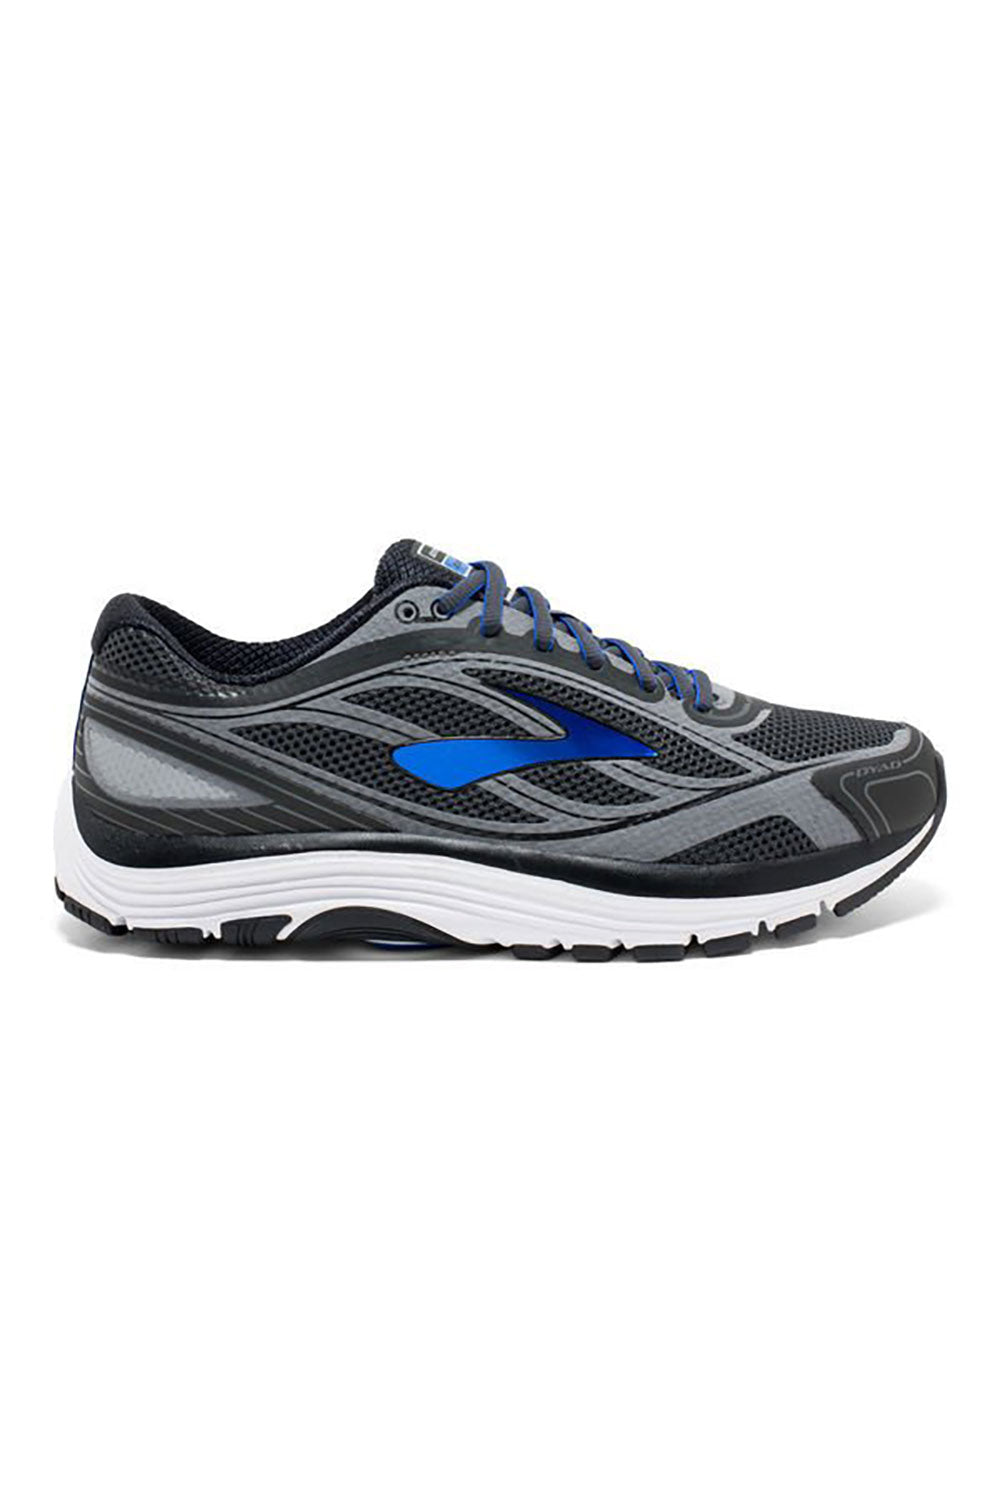 Men s Dyad 9 (4E-Extra Wide) by Brooks at Gazelle Sports 81261c8aabf9